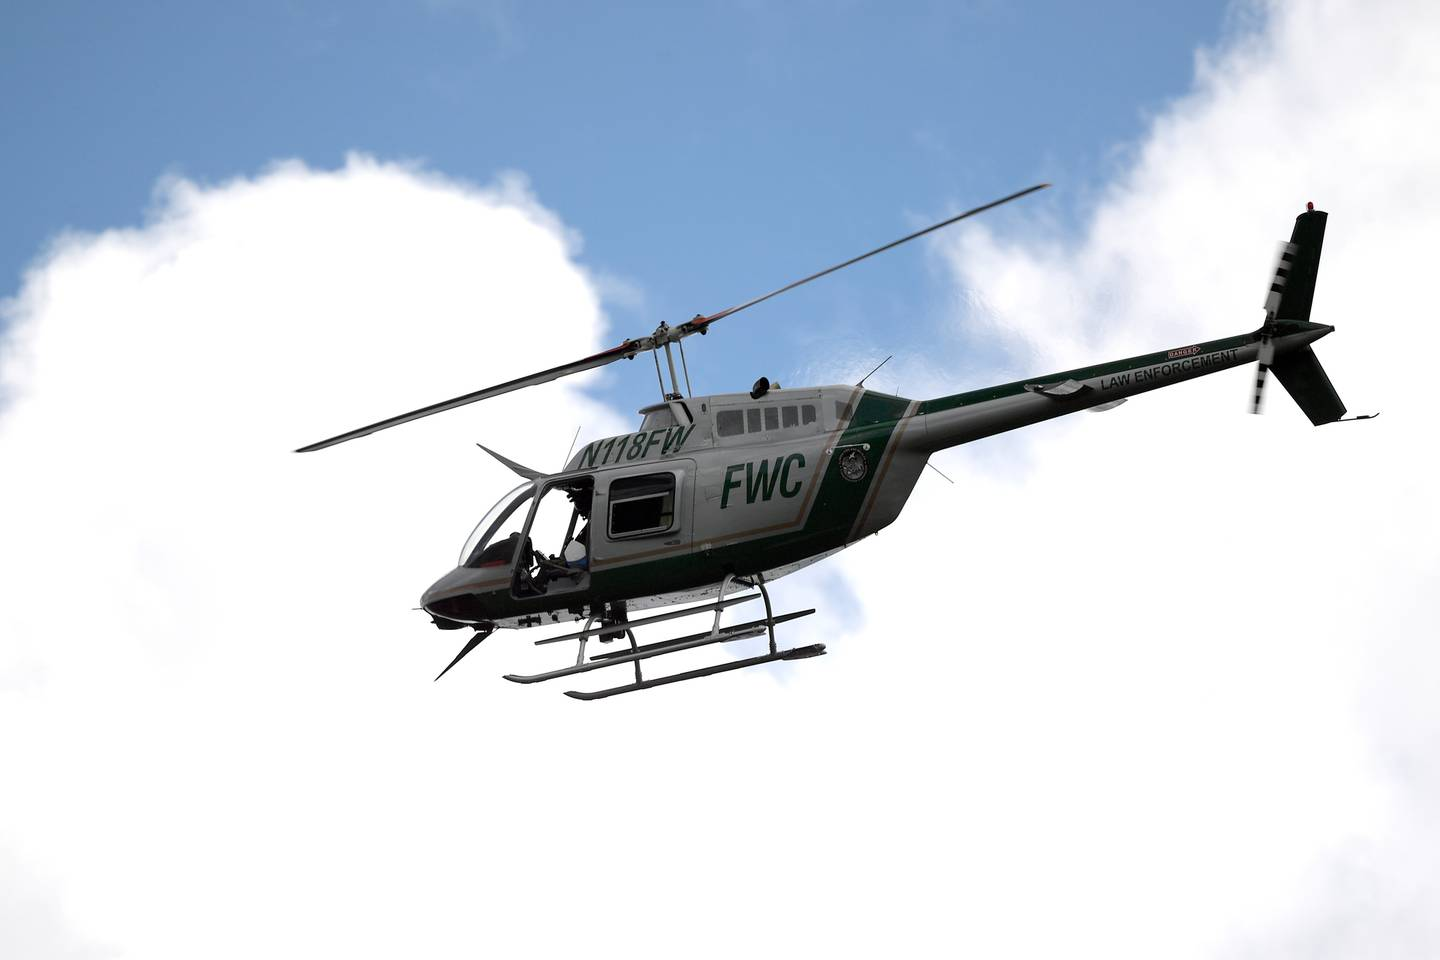 A Florida Fish and Wildlife Conservation Commission helicopter flies overhead during a search for Brian Laundrie in the Carlton Reserve. Photo / AP